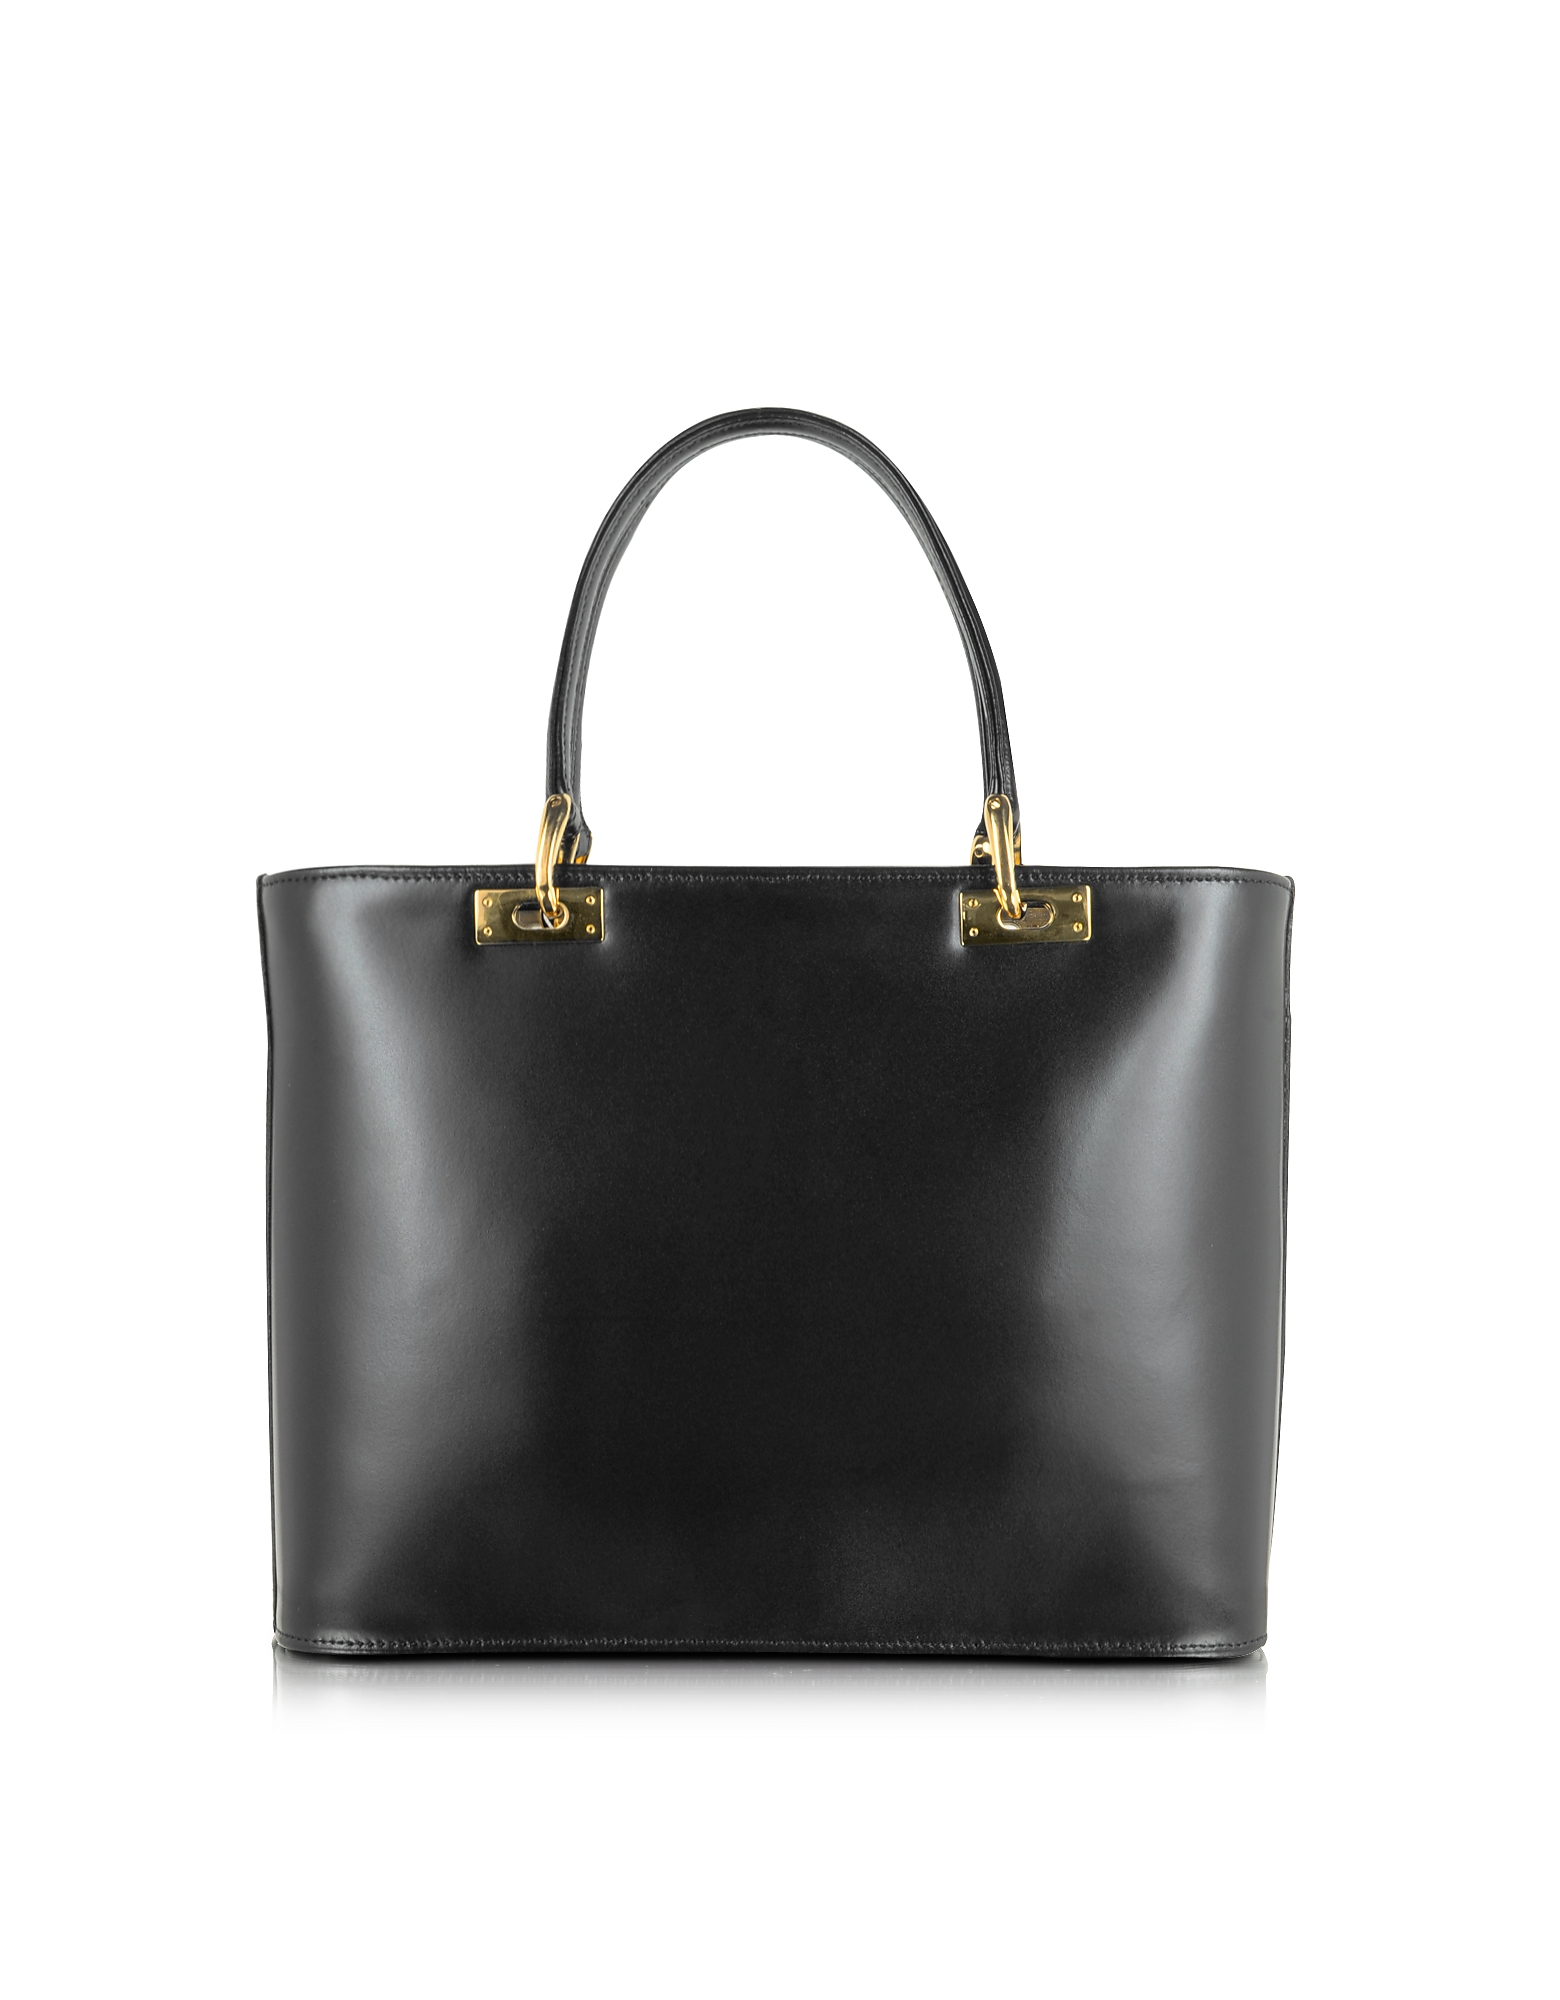 Fontanelli Designer Handbags, Polished Black Leather Tote Handbag